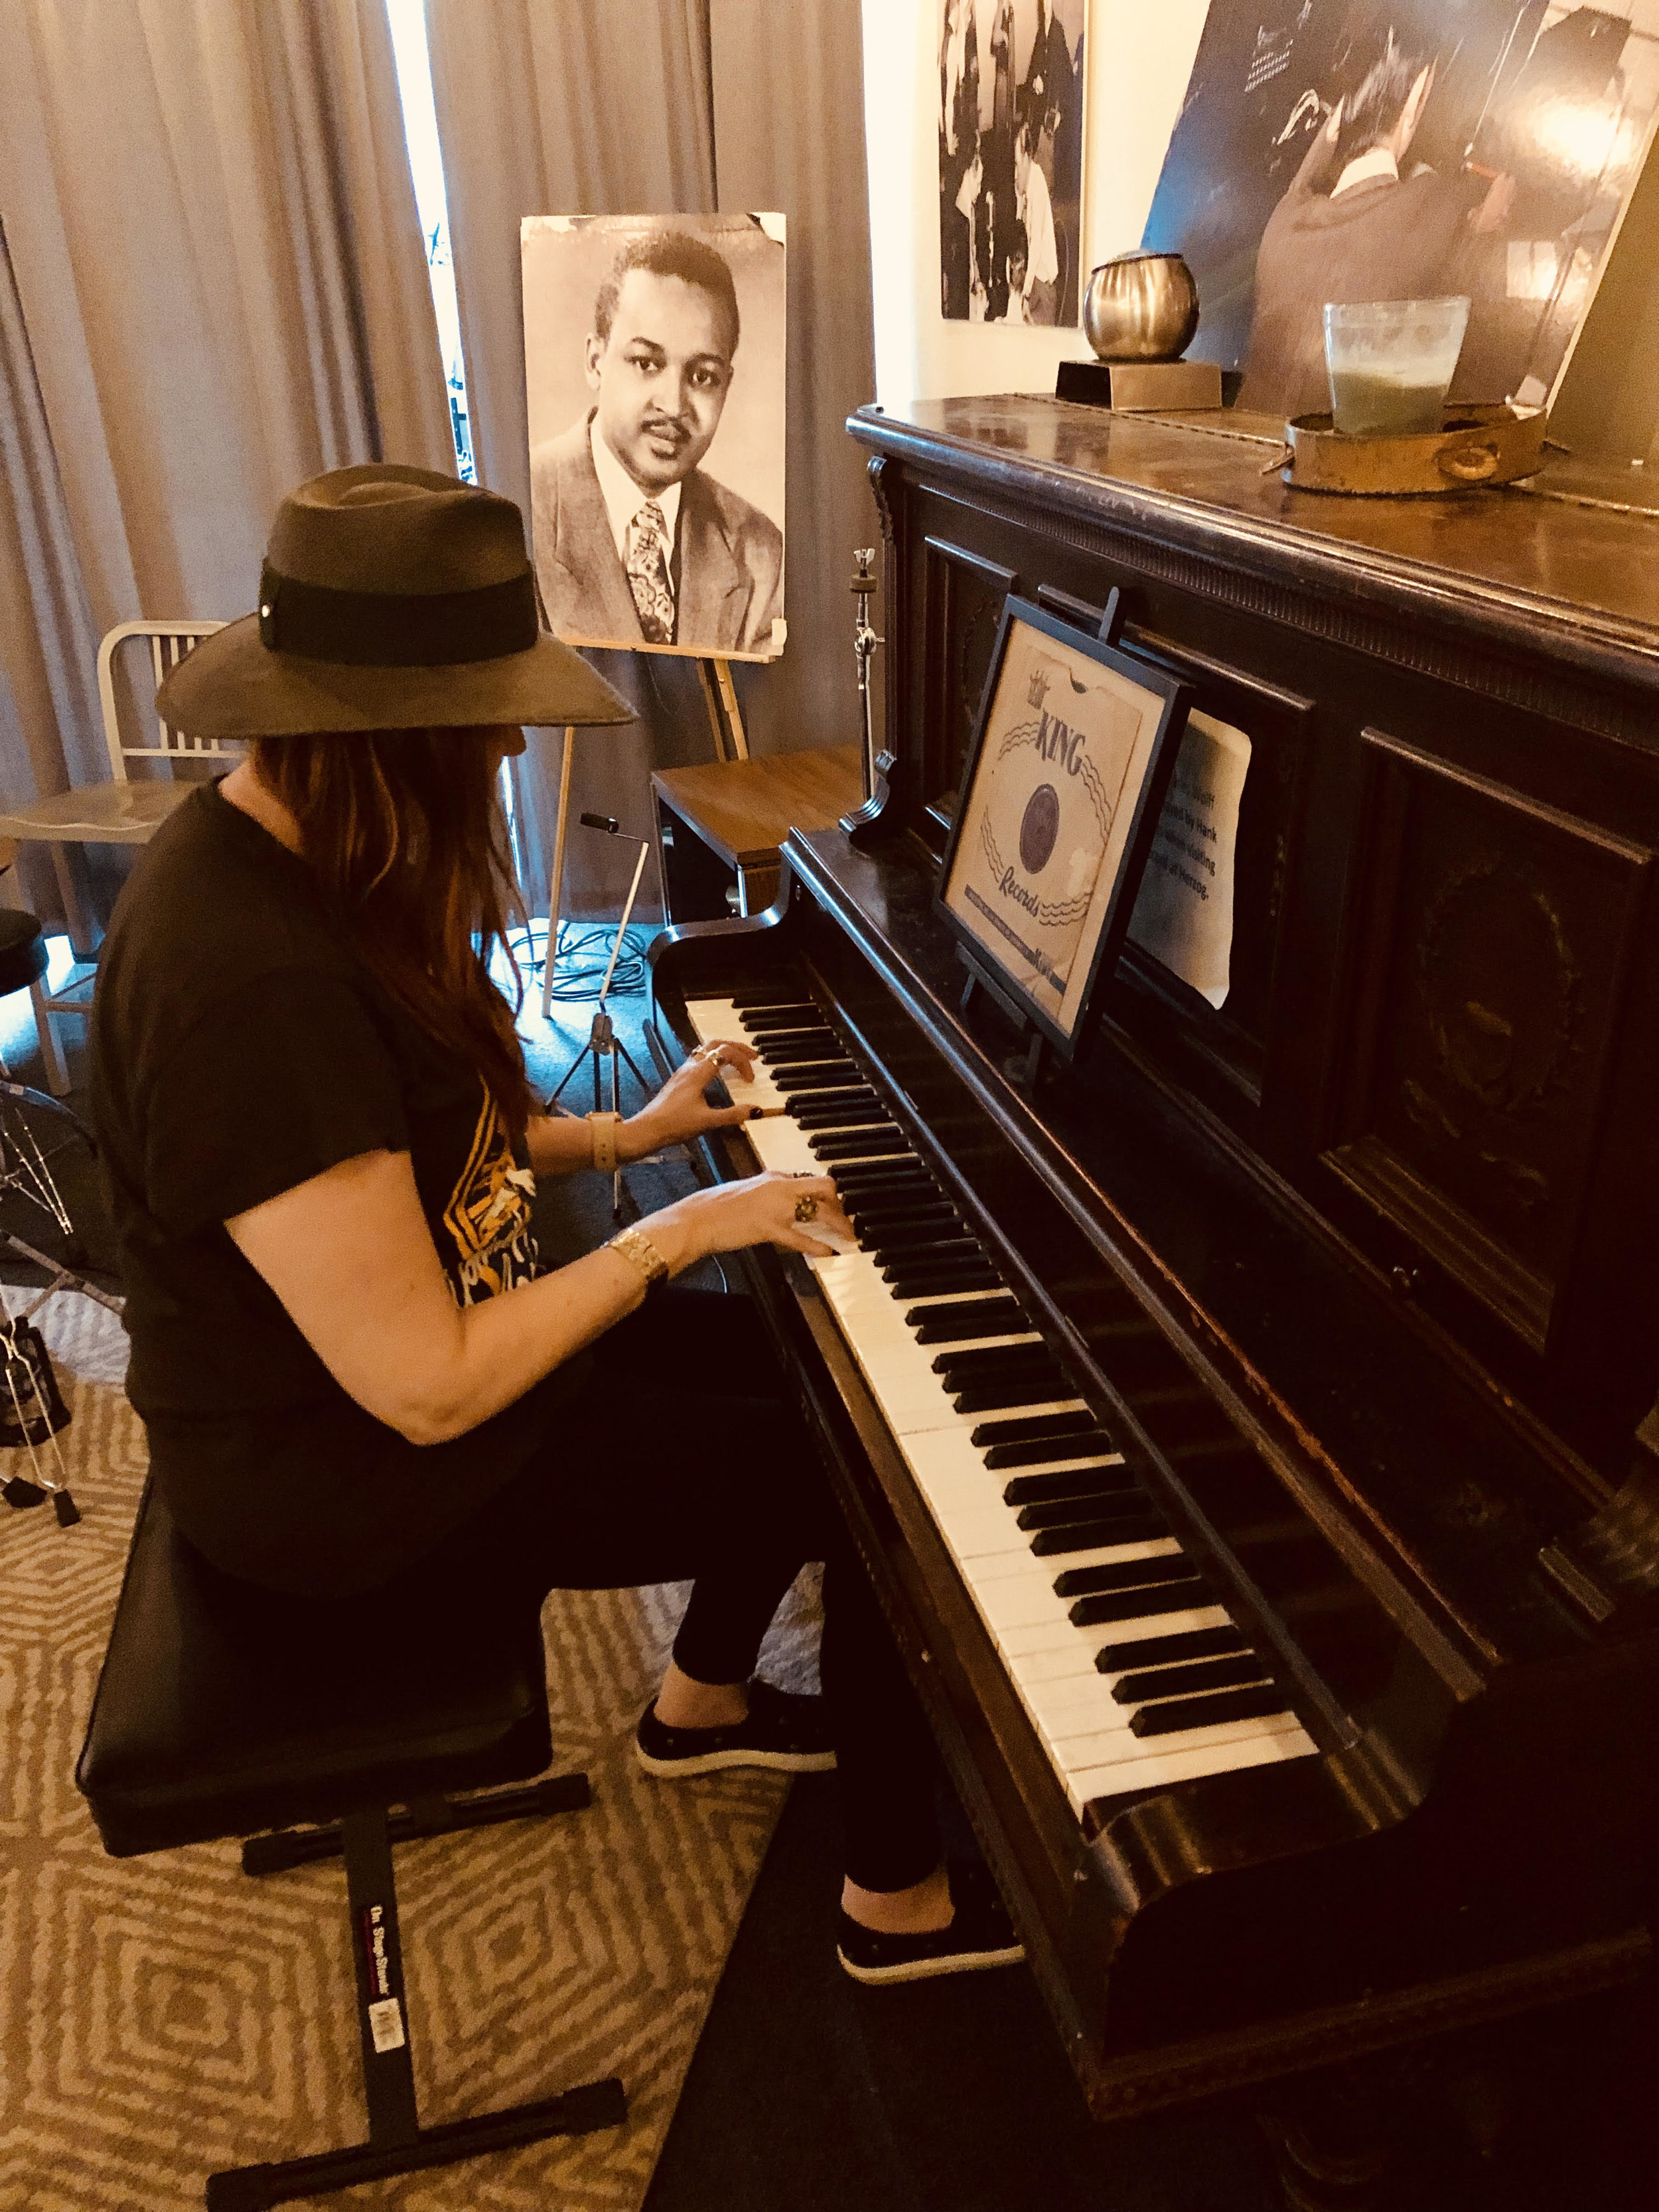 Hilary Williams at the same piano her grandfather likely used to work out arrangements